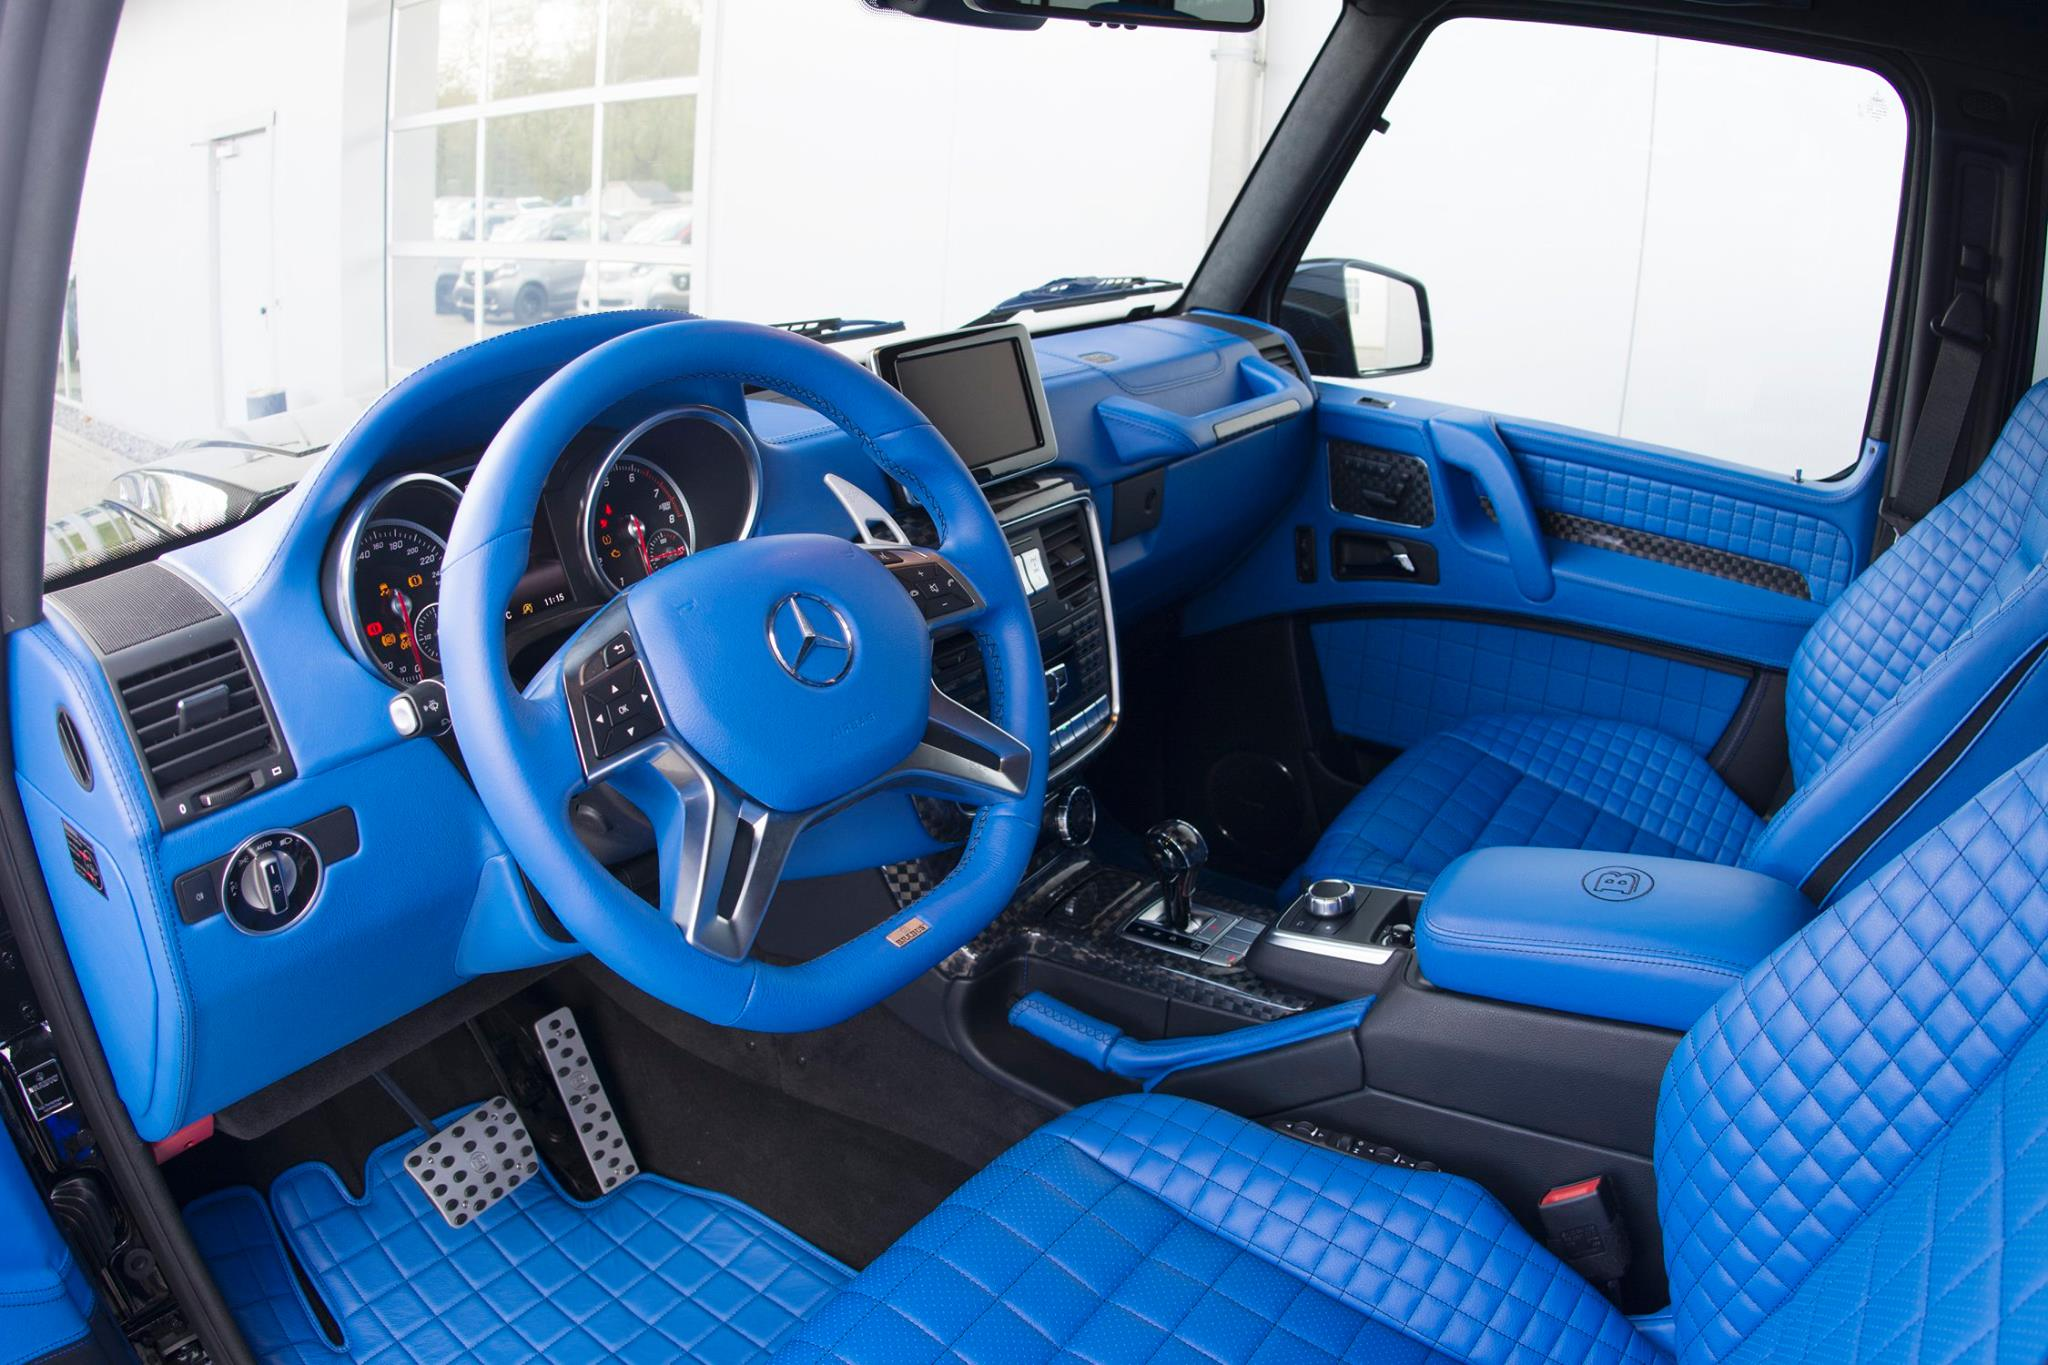 brabus g500 4x4 has a blue leather interior that 39 s nifty. Black Bedroom Furniture Sets. Home Design Ideas